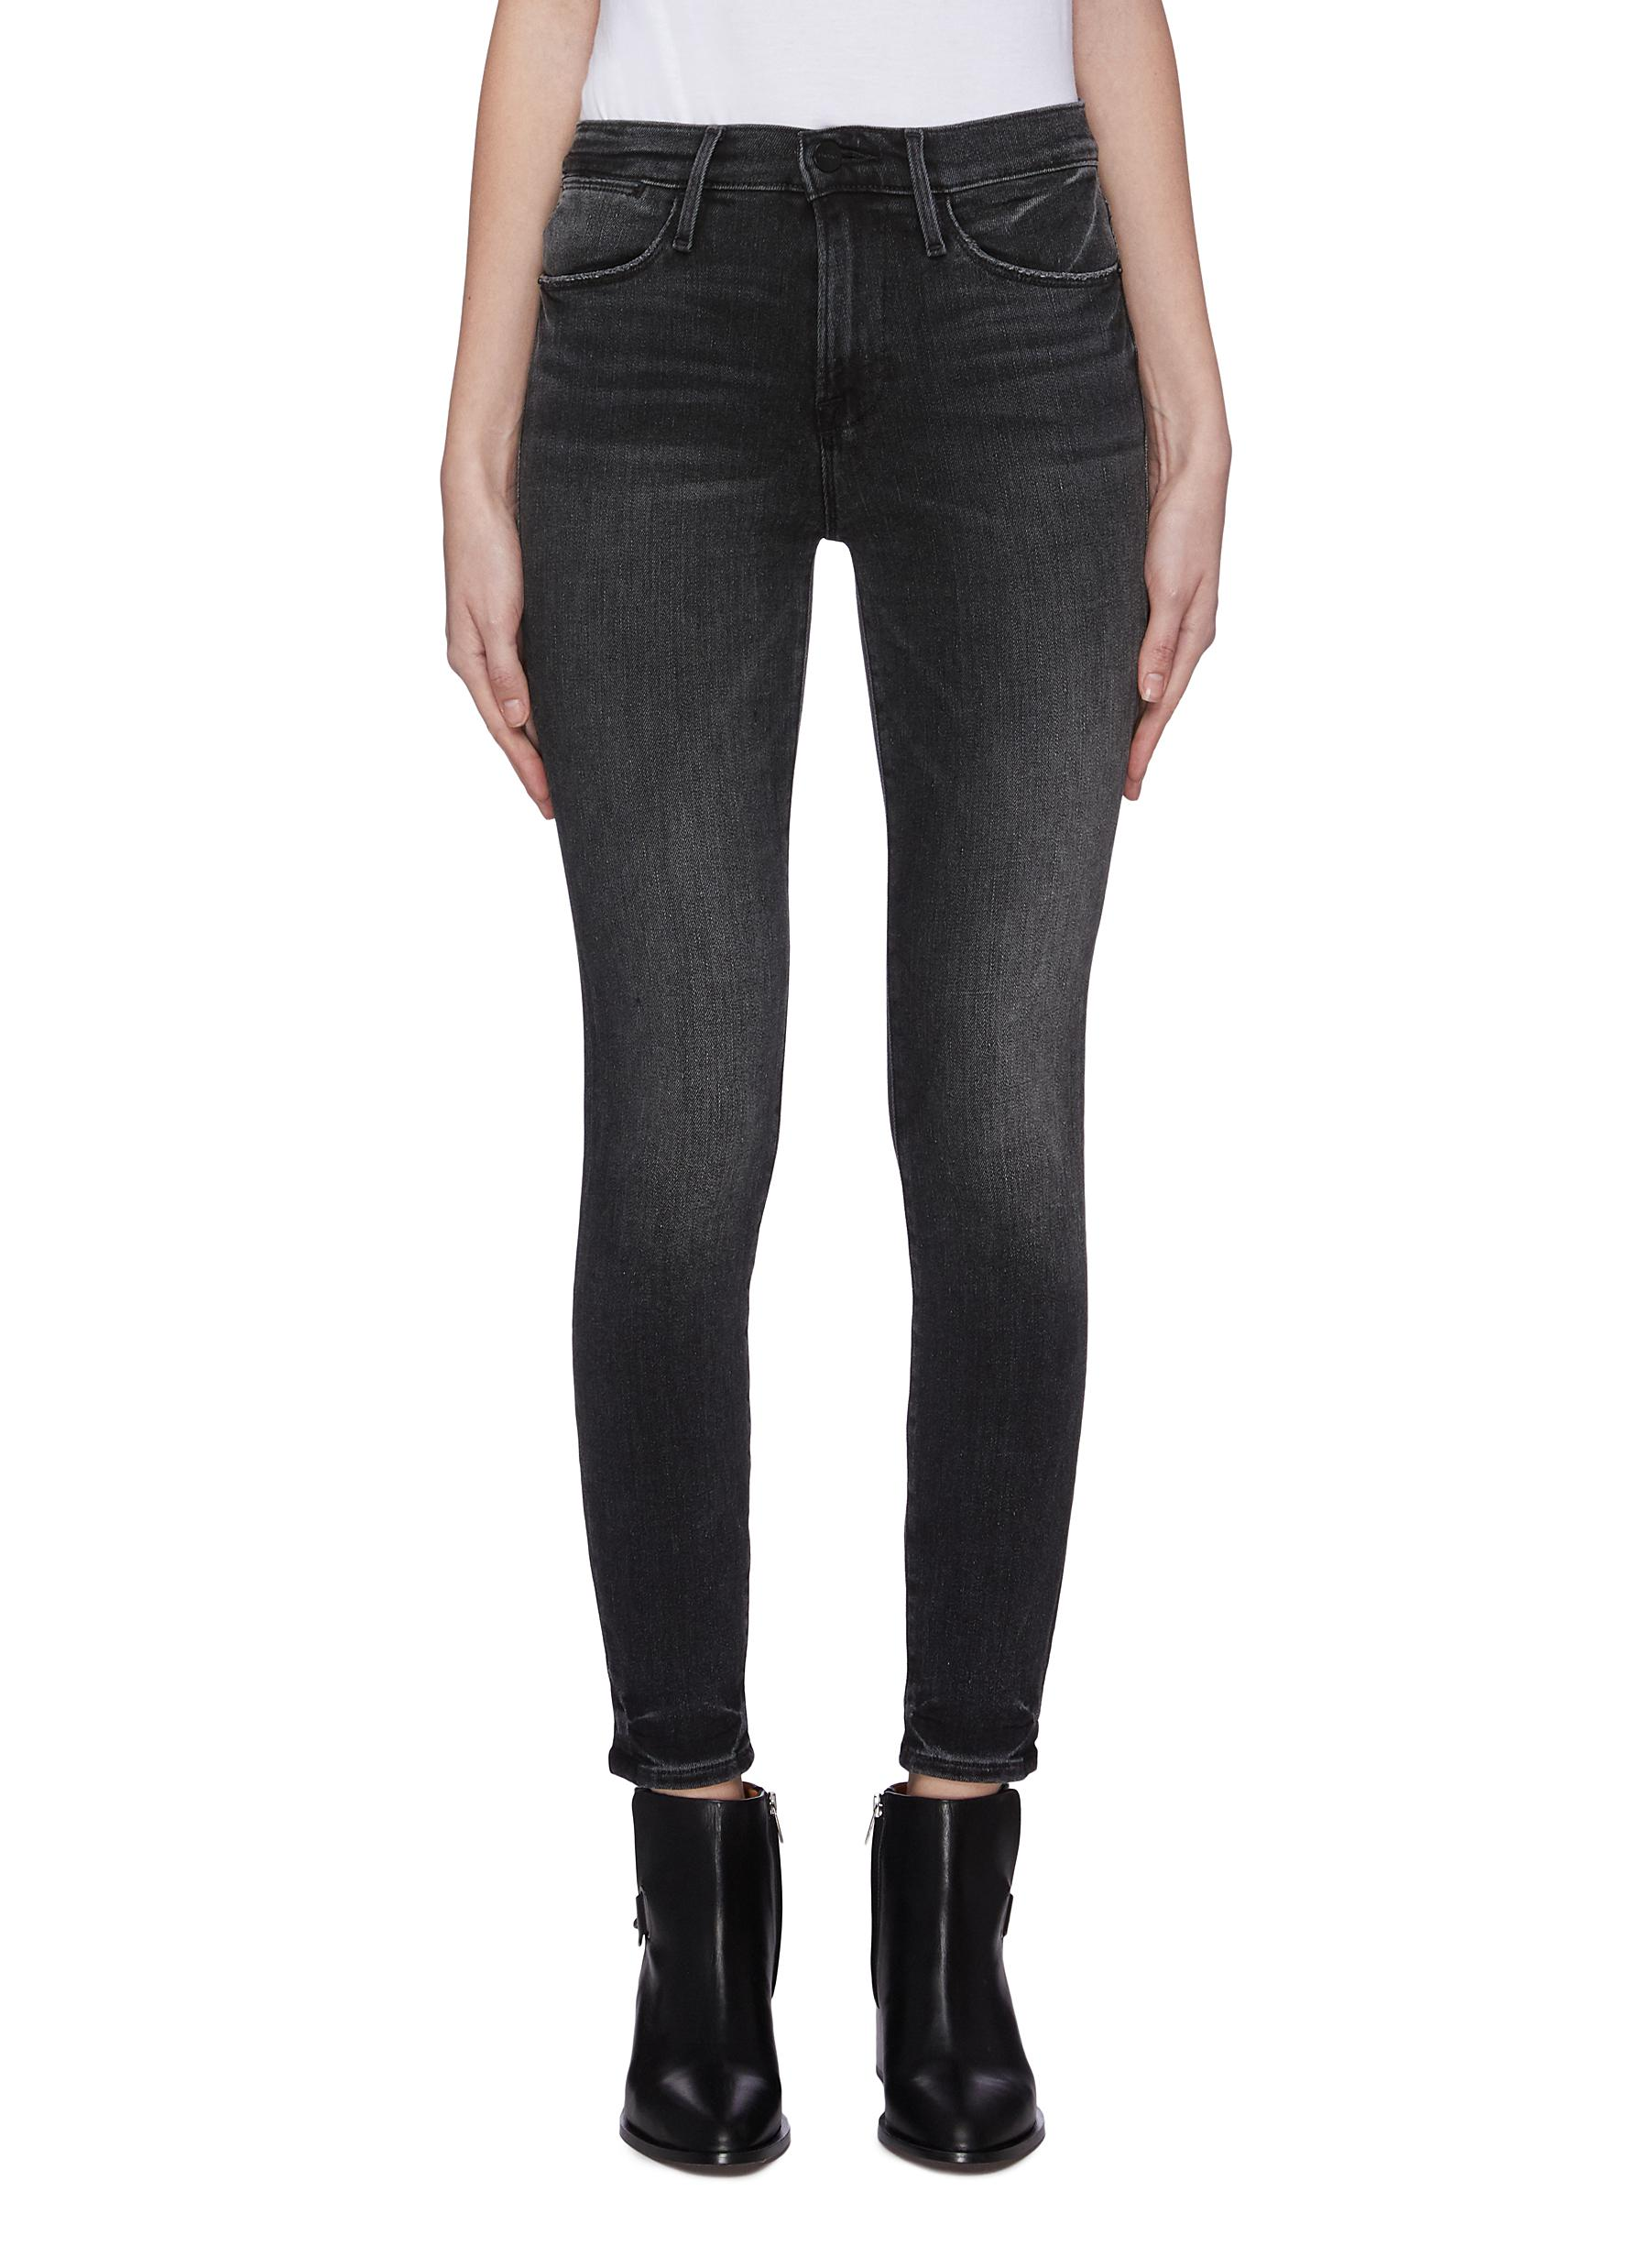 Buy Frame Denim Jeans 'Le High Skinny Hr' released hem jeans